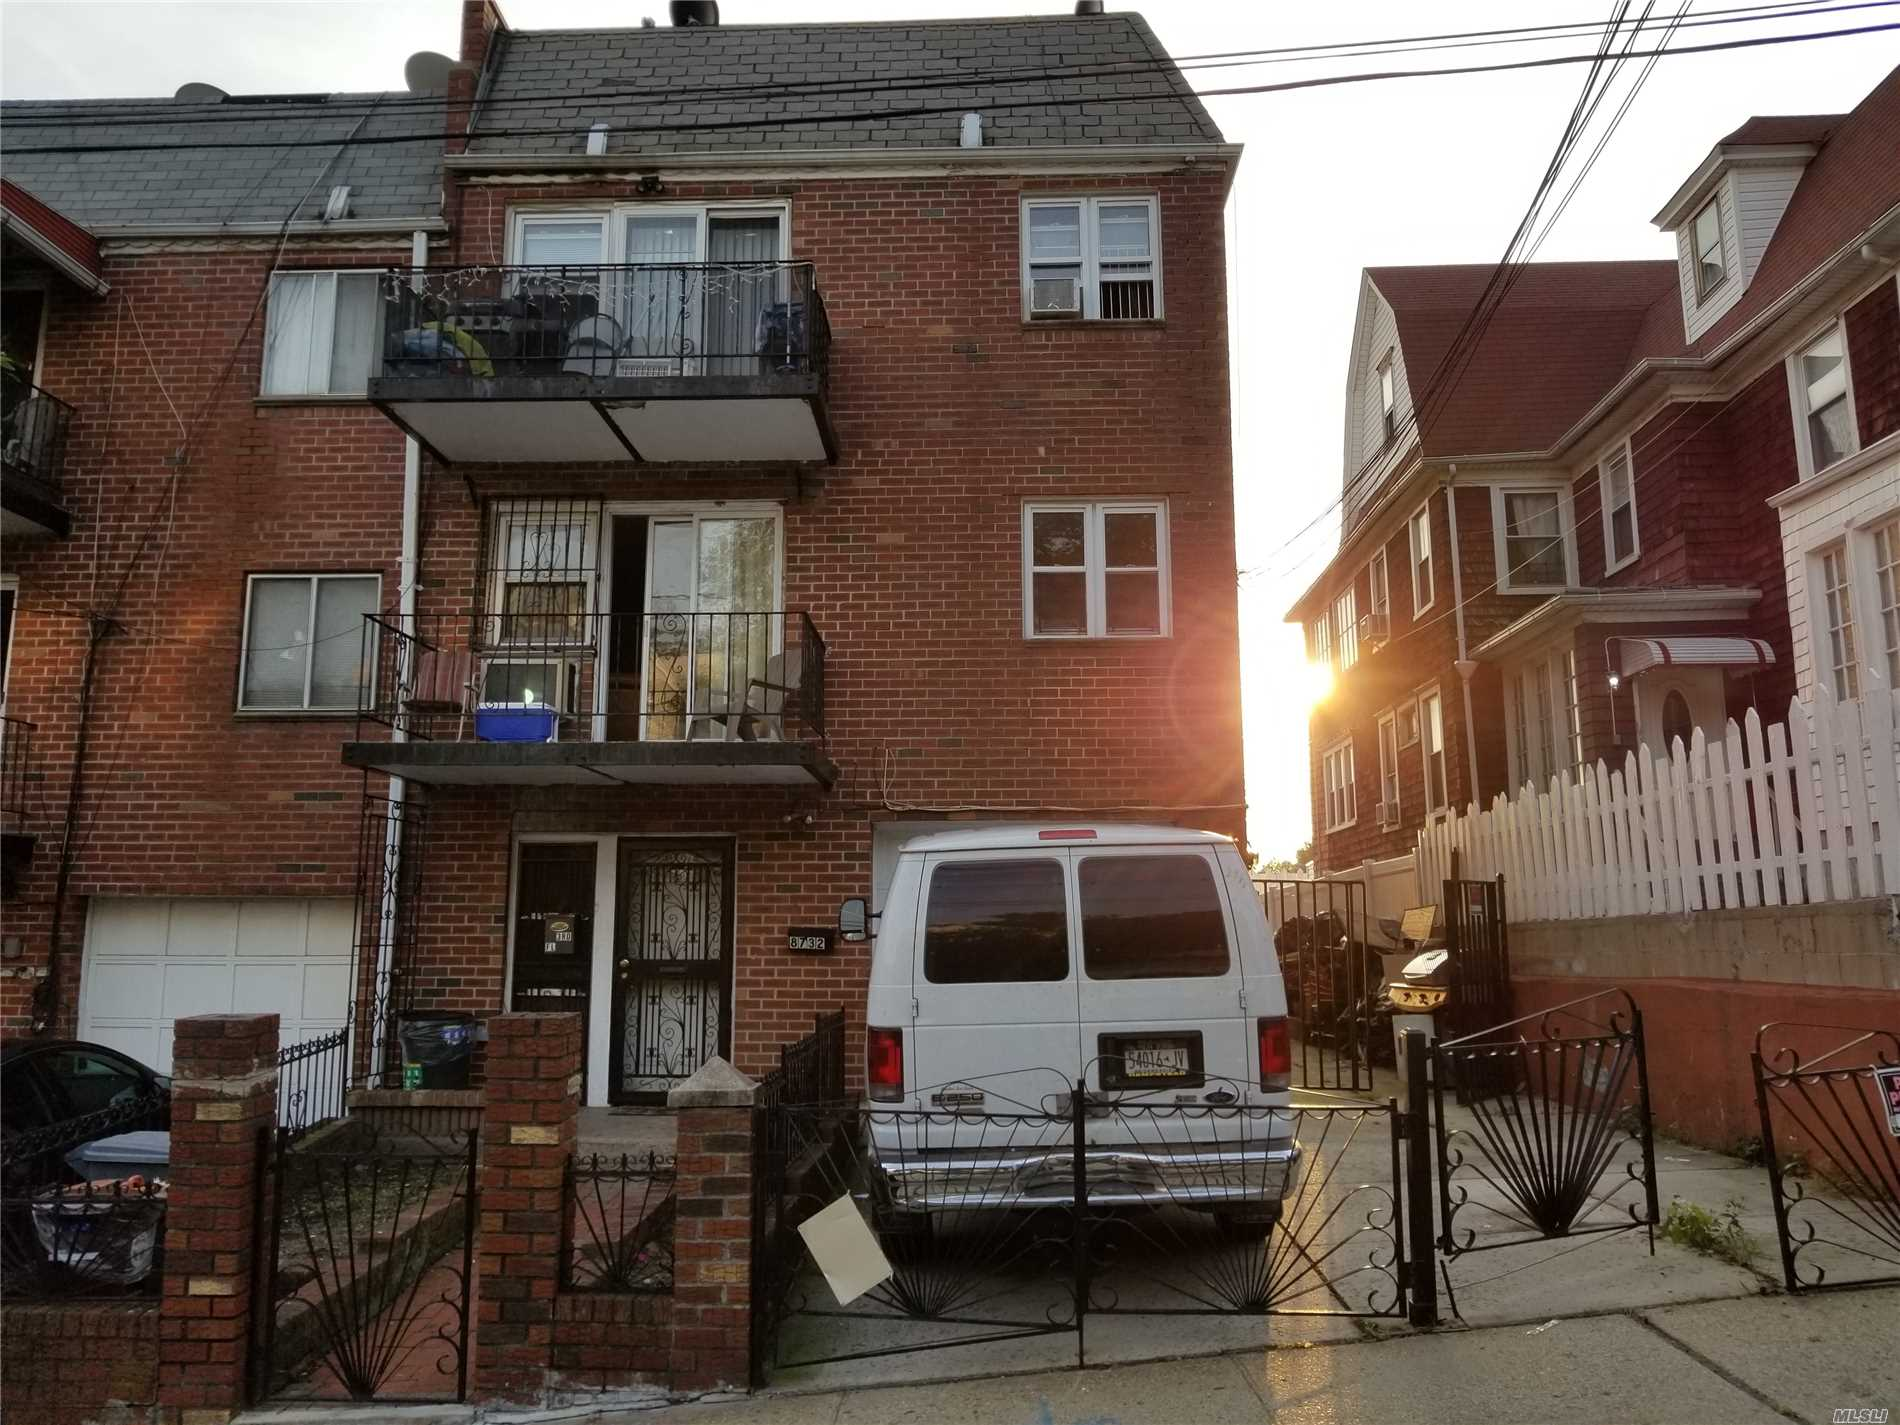 Sold As Is. 2 Family Semi-Detached Brick With 1 Car Garage - 2 Private Driveways. Tenant Occupied. Full Unfinished Basement. F Train At 169th Street Stop . Q65 Bus.